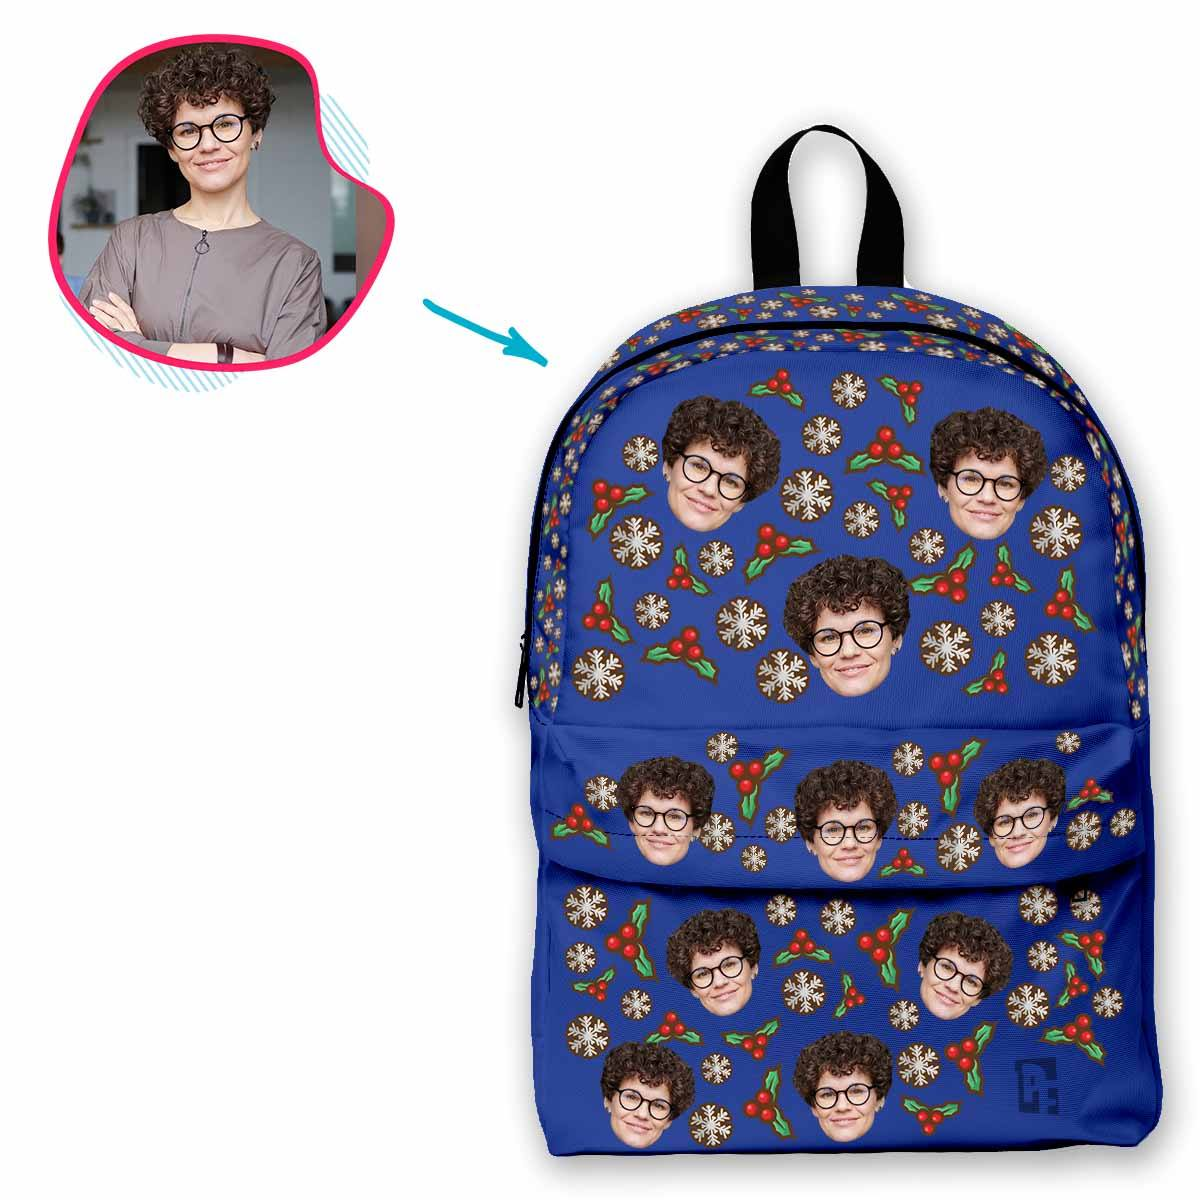 darkblue Mistletoe classic backpack personalized with photo of face printed on it